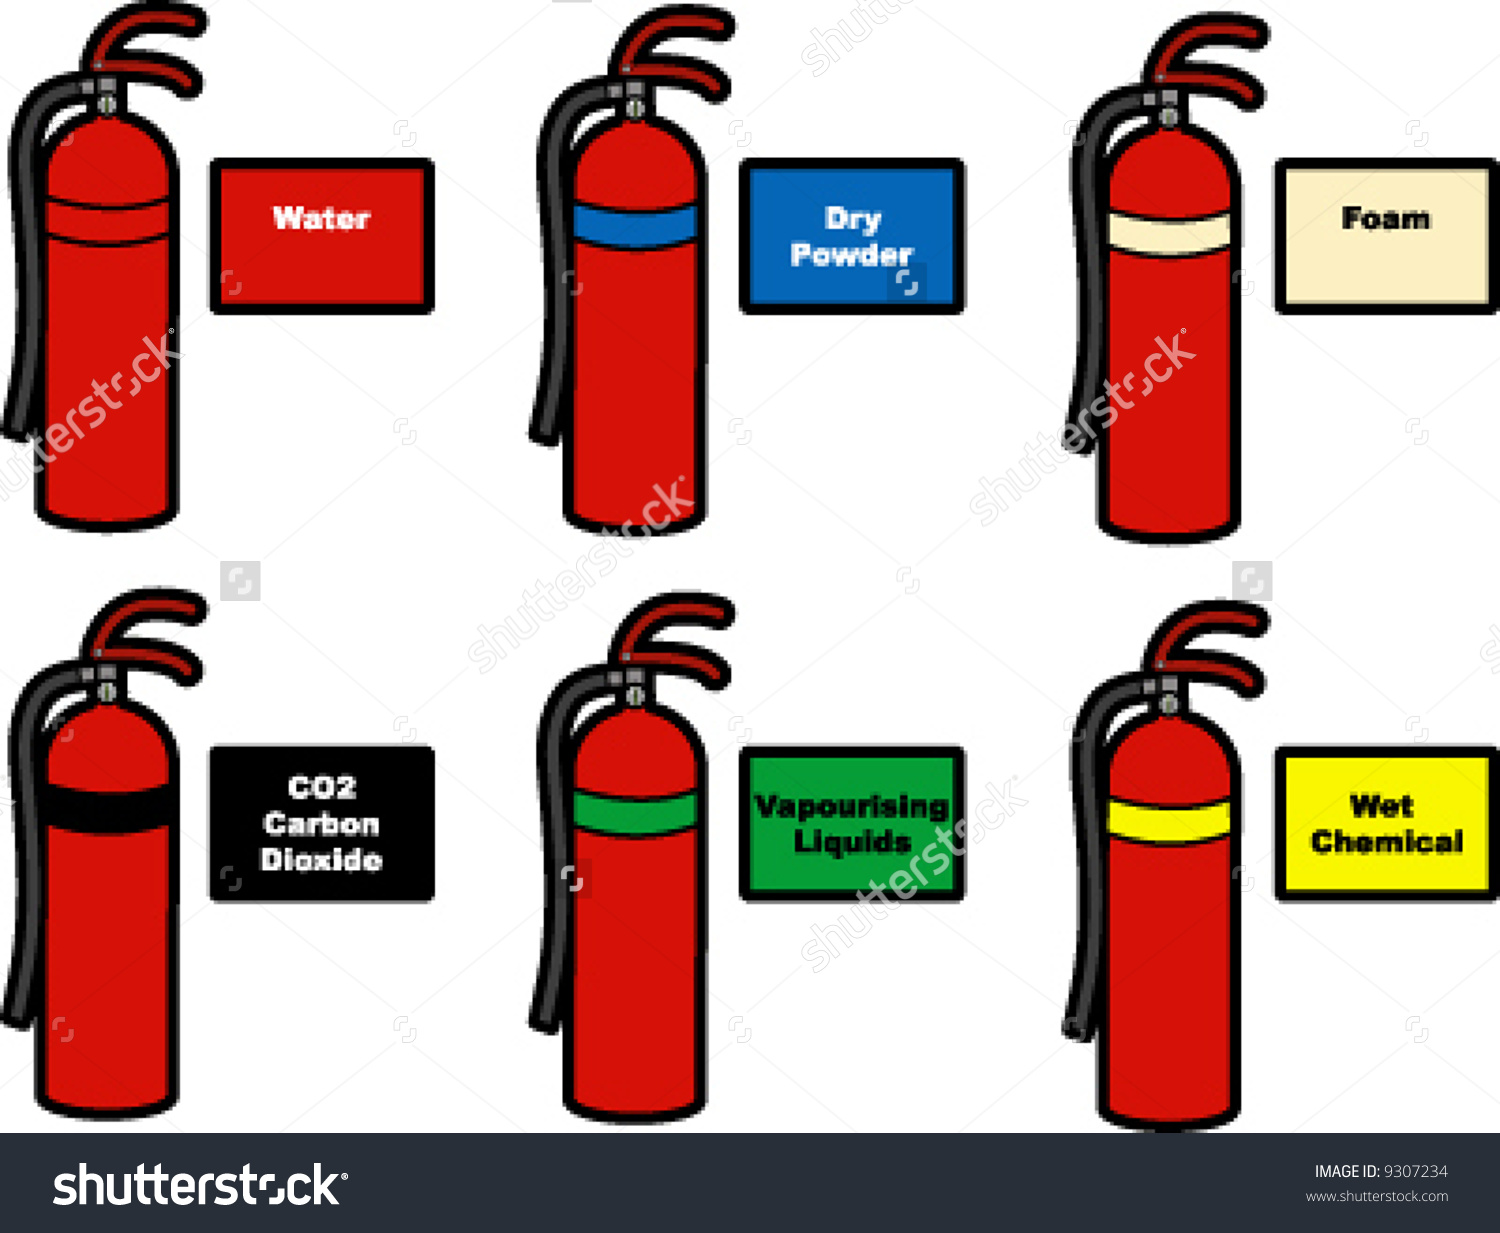 Fire Extinguishers Uk Colour Codes Stock Vector 9307234.